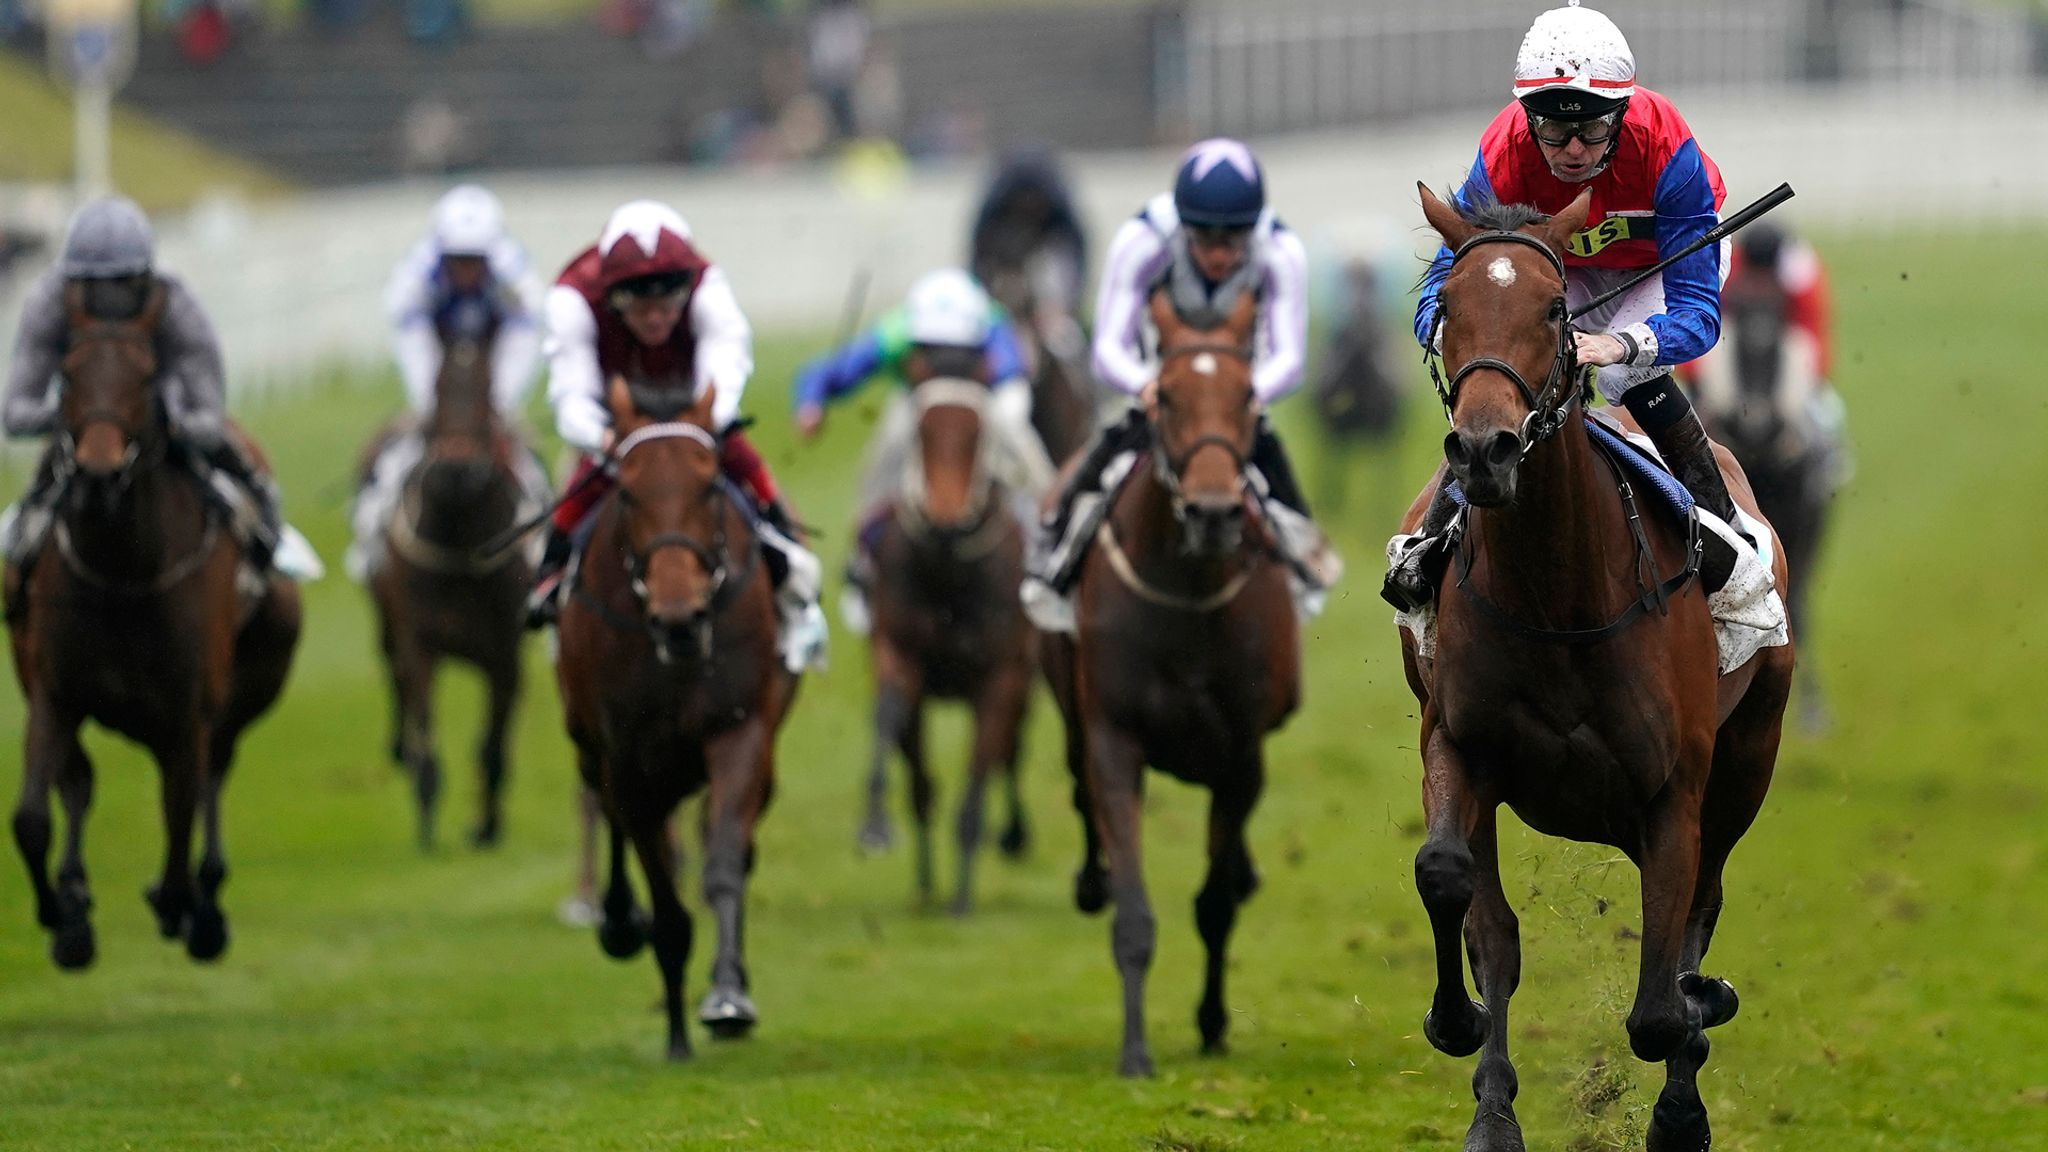 Alex Hammond previews the Champion Stakes at Ascot